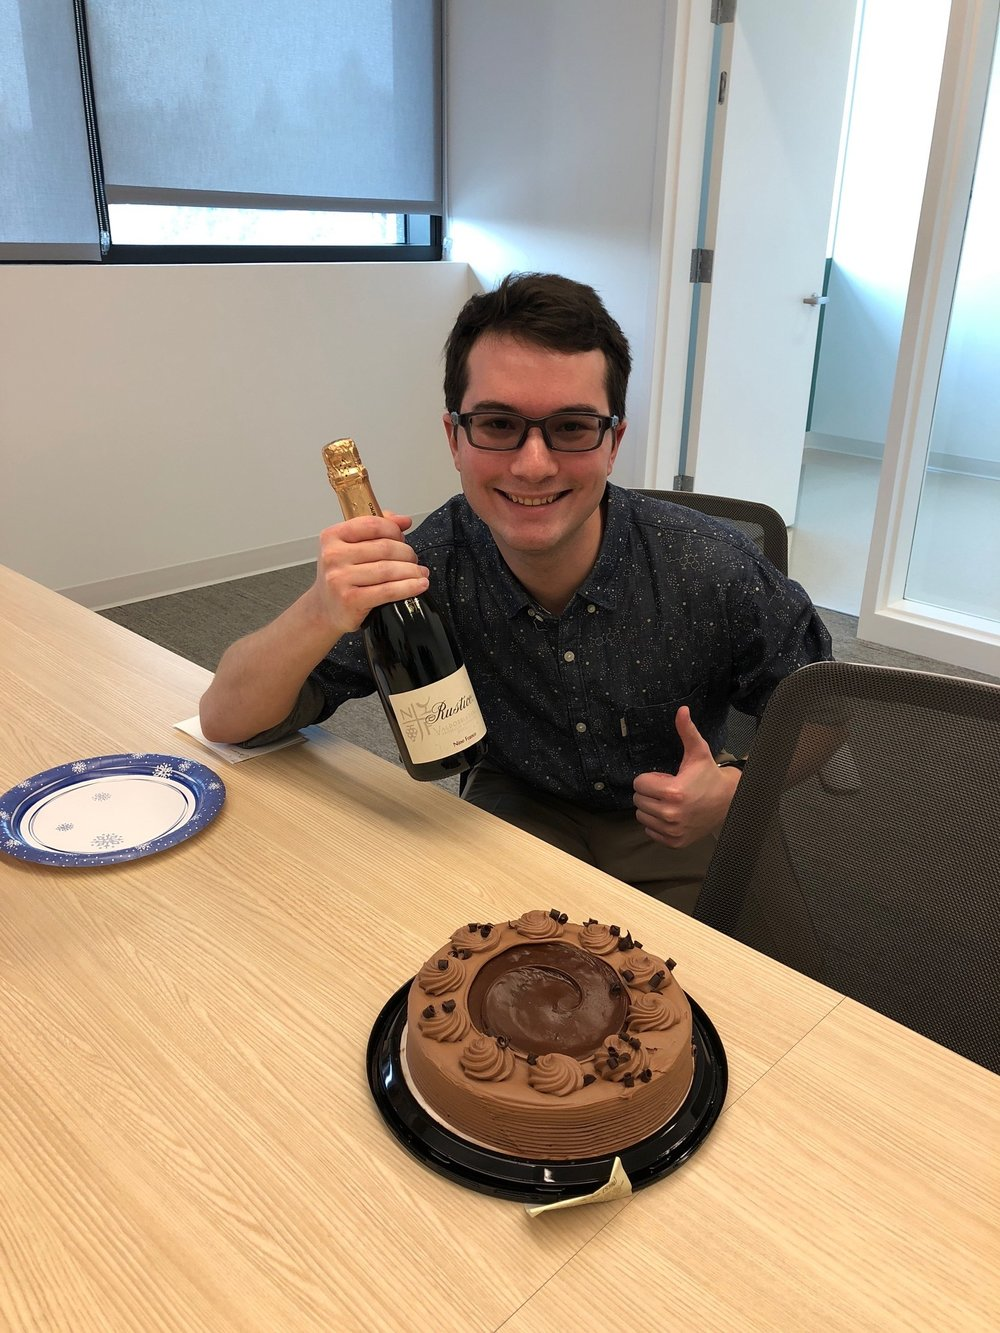 Jason successfully completes his Ph.D. qualifying exam. Congrats to Jason! - 5 Dec 18